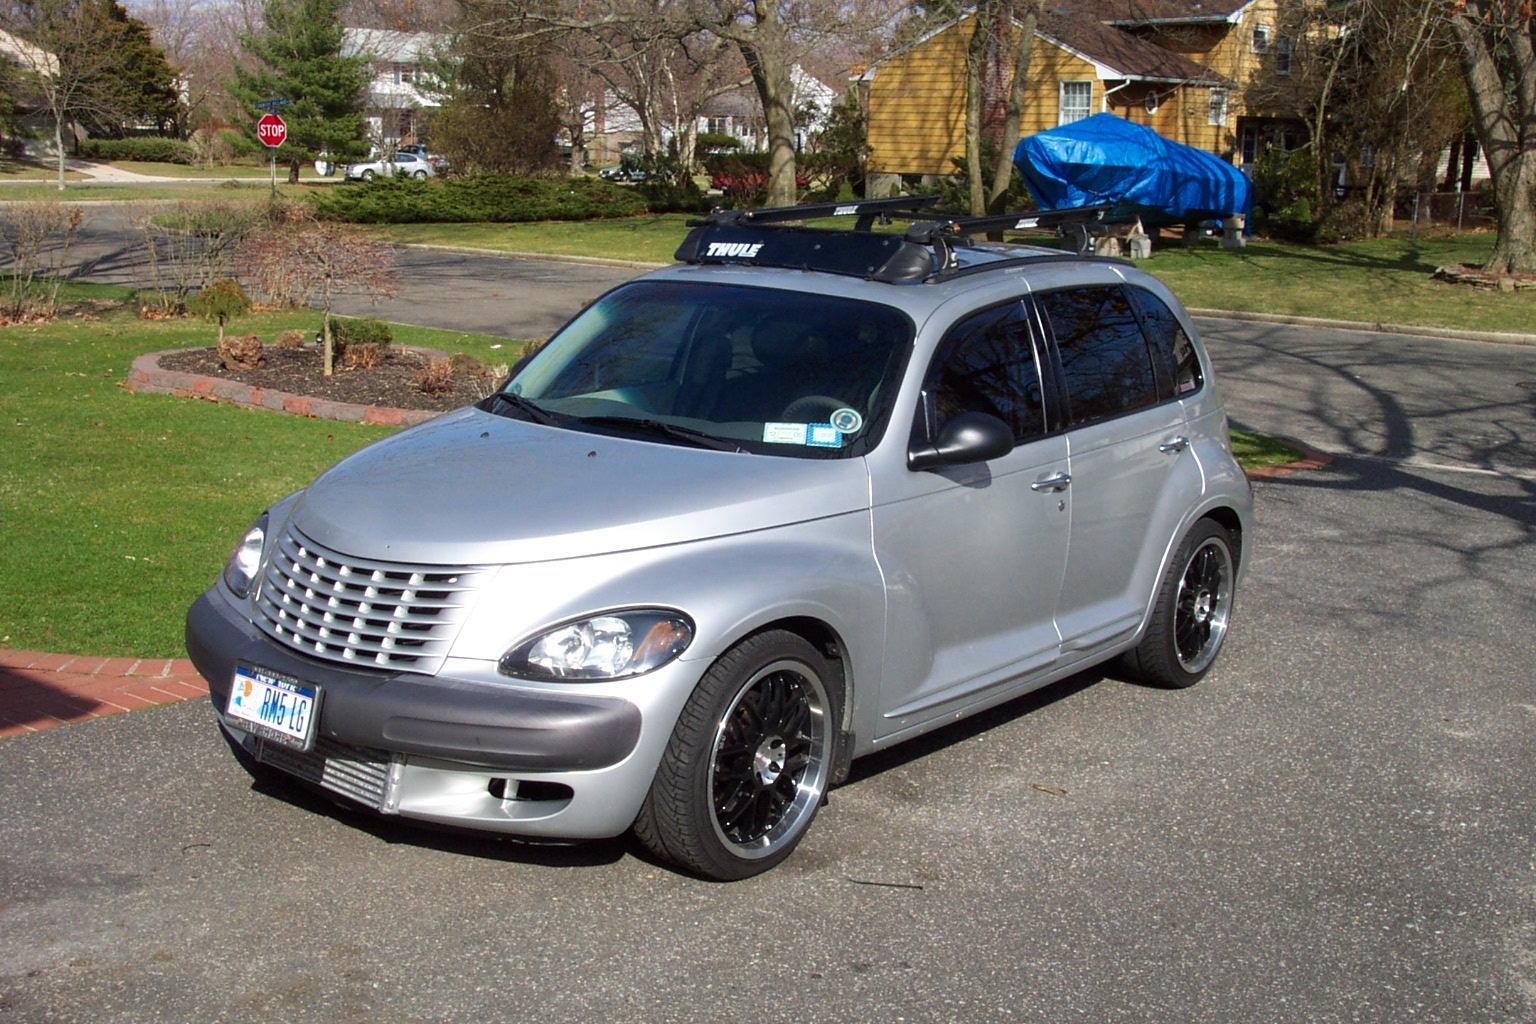 Original on 2004 Chrysler Pt Cruiser Accessories